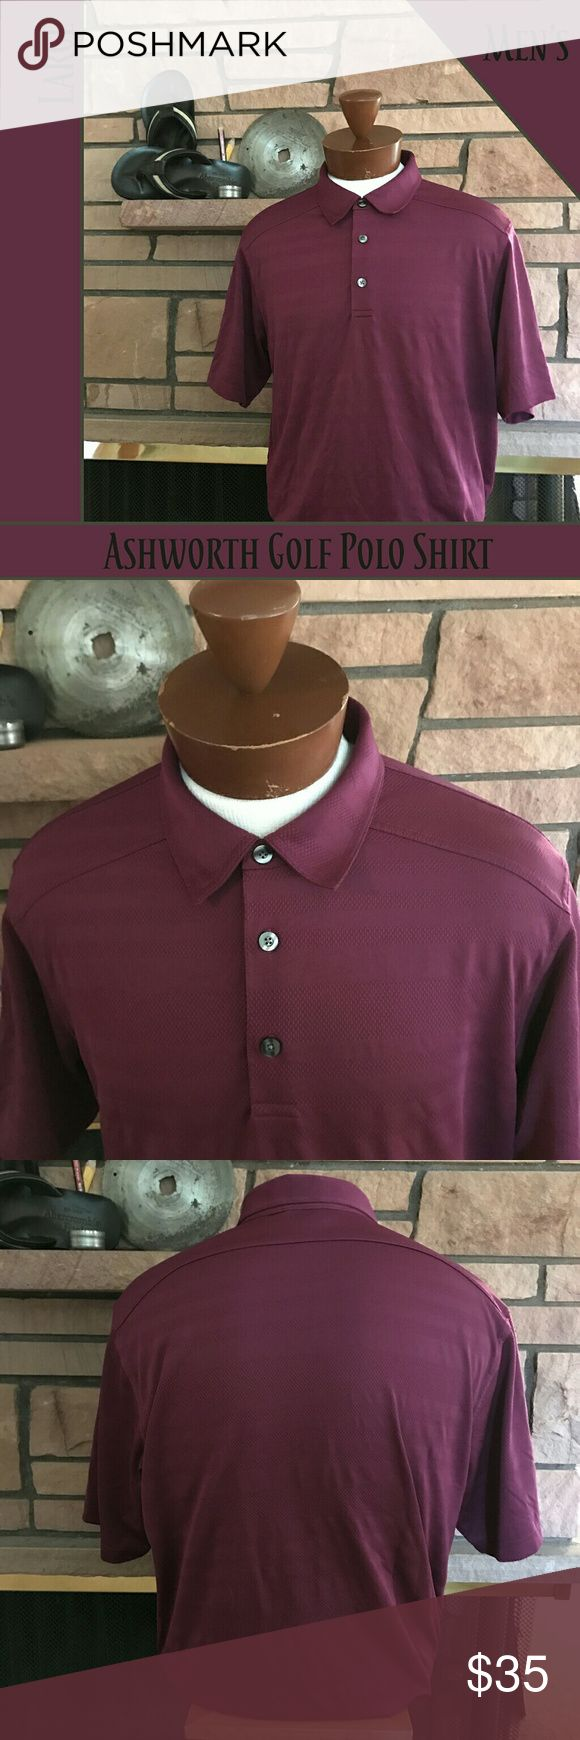 🍇 Men's Ashworth Golf Shirt This Ashworth golf polo shirt will look great on you both on and off the links. It is in EUC and ready to join your wardrobe.   From a smoke-free and happy-to-bundle closet.   No trades or transactions outside of Poshmark.  [T458] Ashworth Shirts Polos